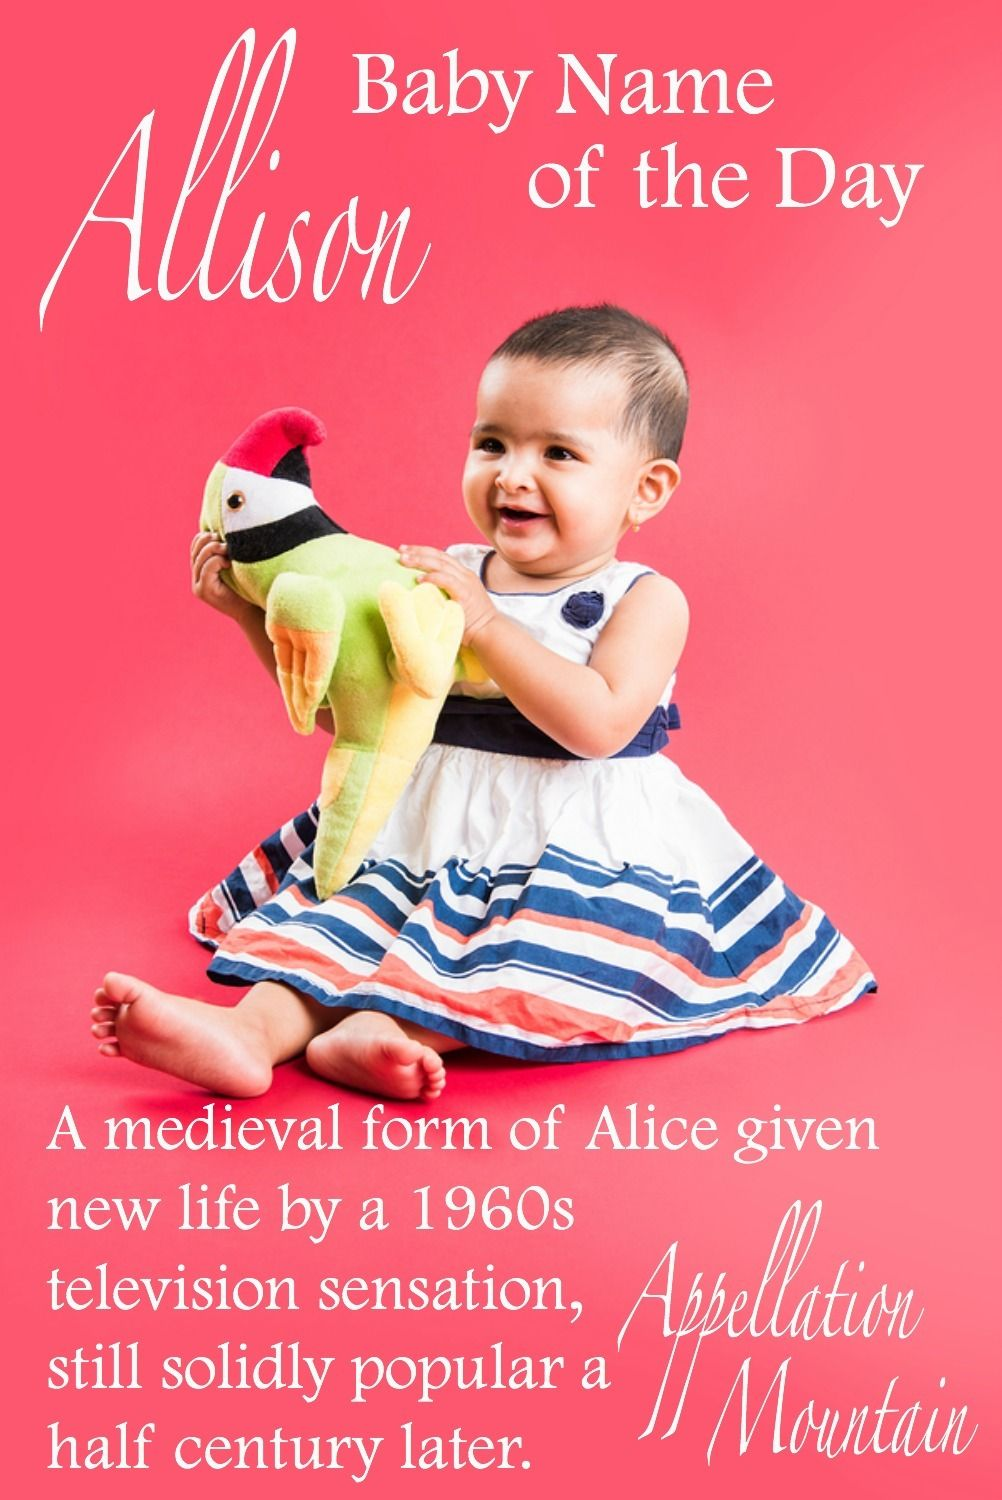 Allison reigns as the queen of tailored ends with son names for girls once a nickname for alice today it stands on its own if you love surname choices